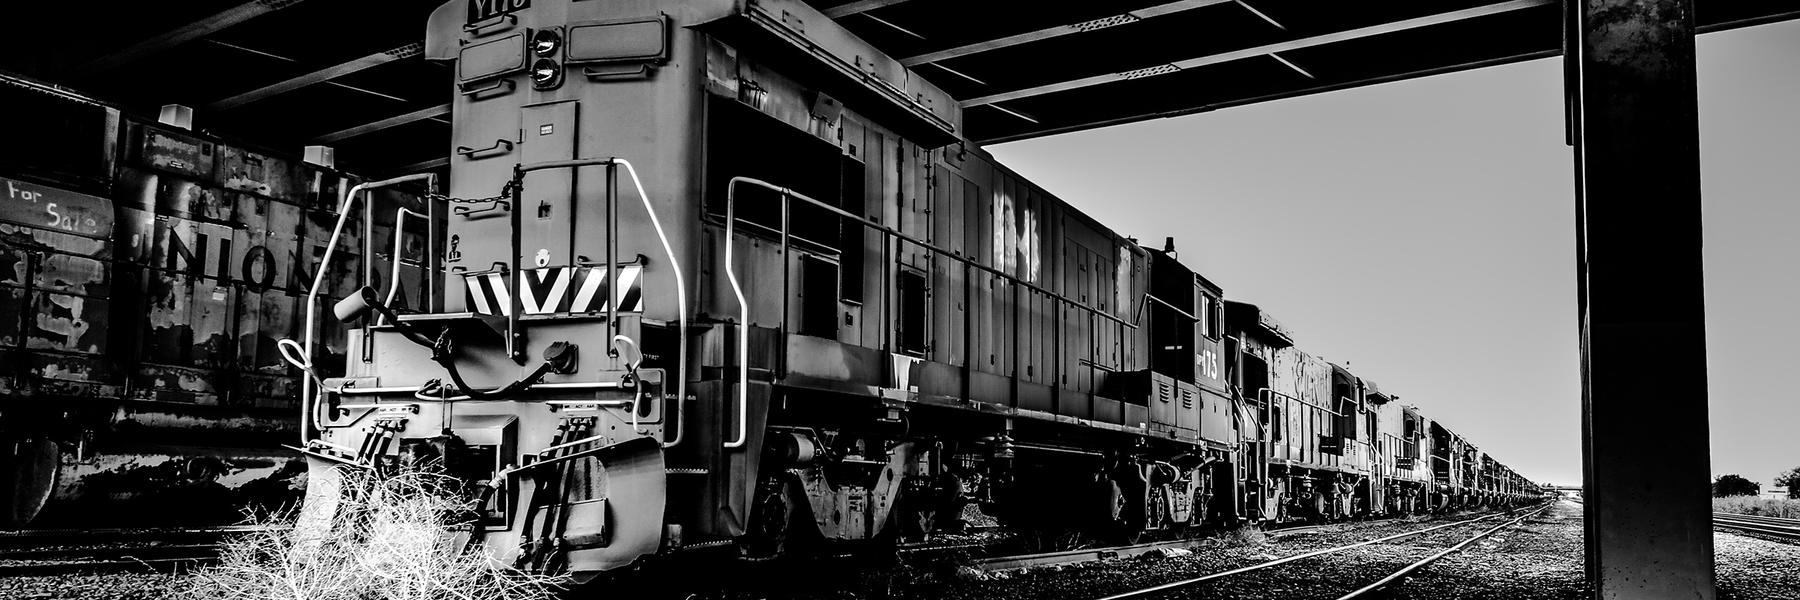 Black-White-Train-Unsplash